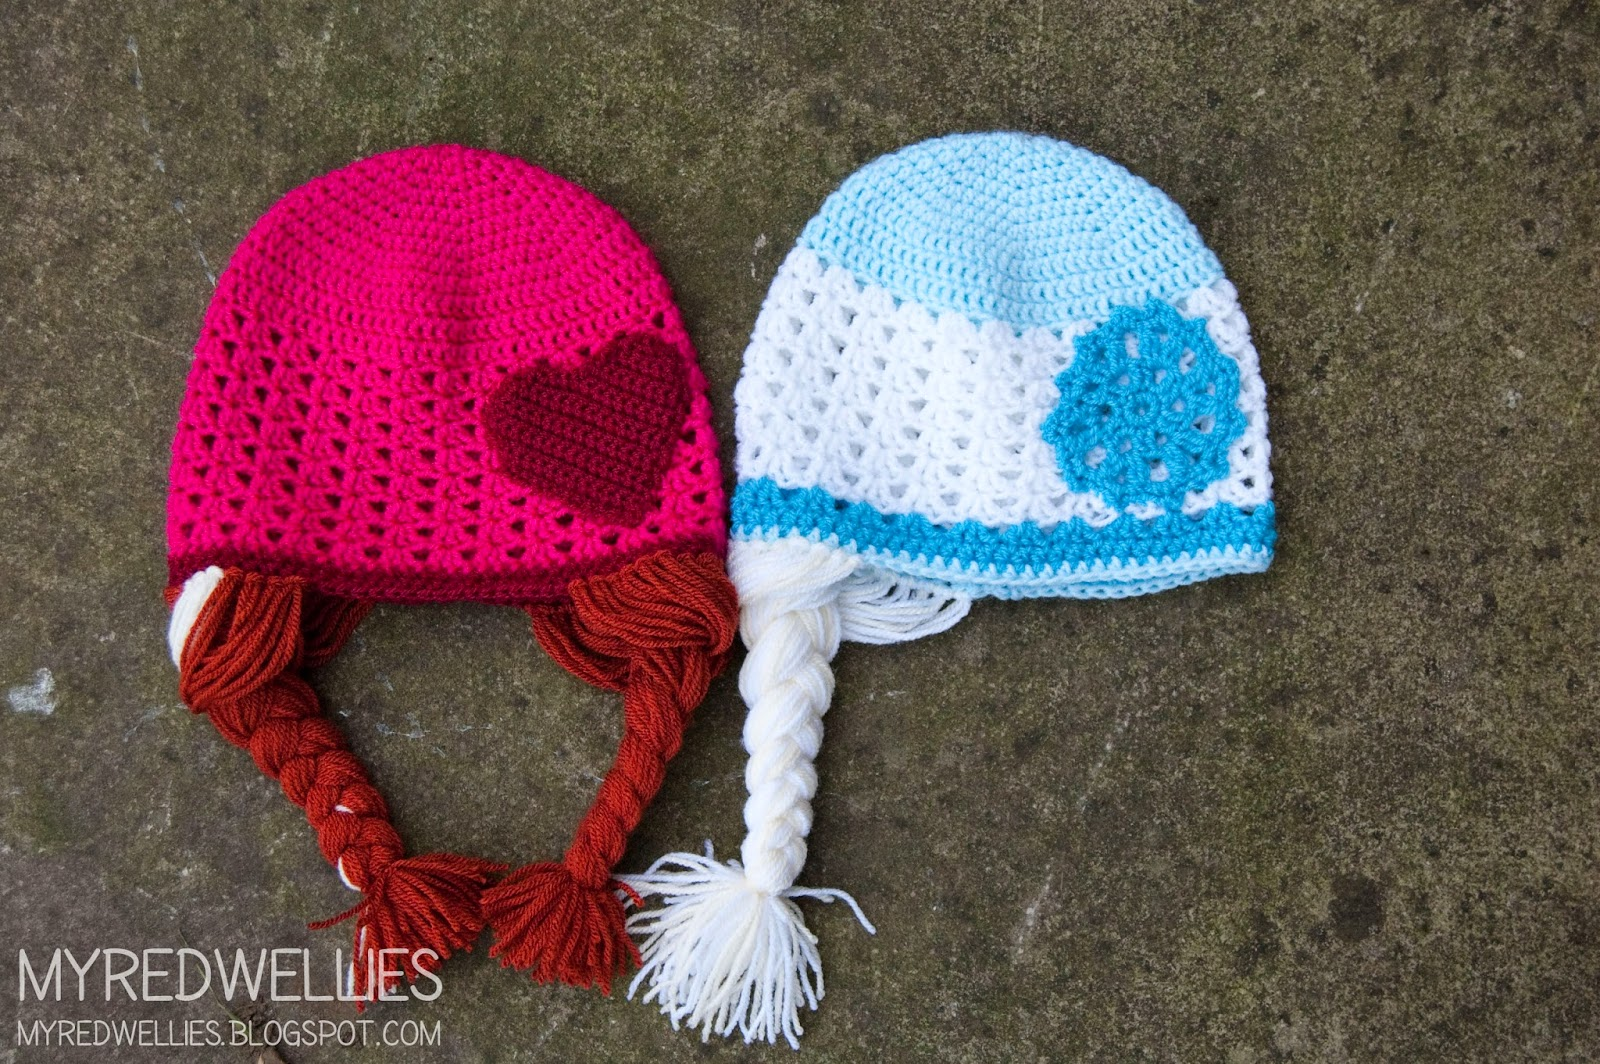 Crochet Hat Pattern For Elsa : My Red Wellies: Anna & Elsa crochet hats - A free Crochet ...